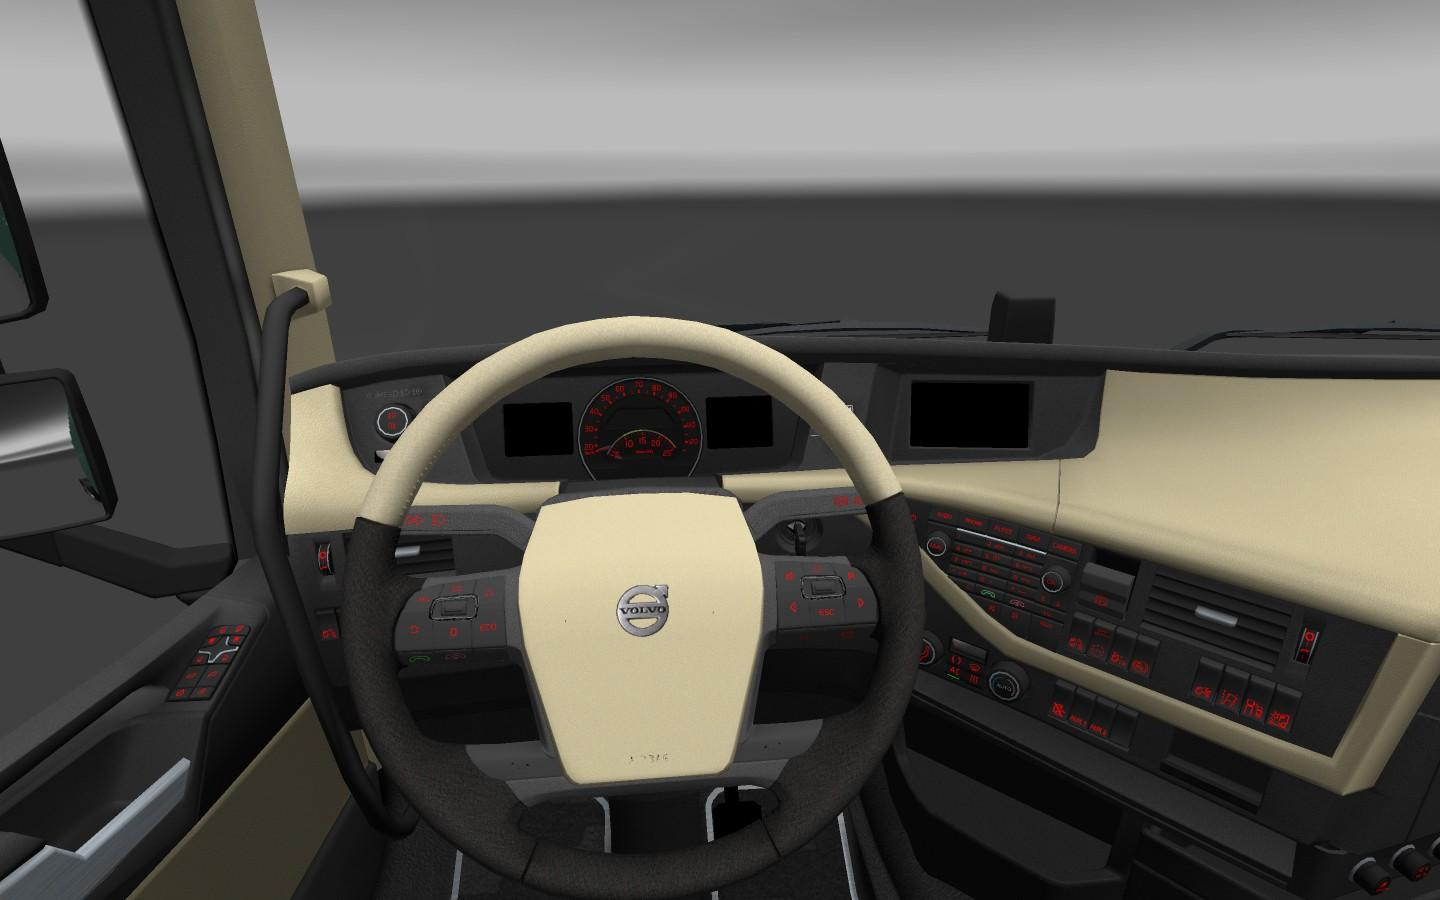 volvo-fh16-dashboard-lighting-1-16-x-and-1-17-x_1